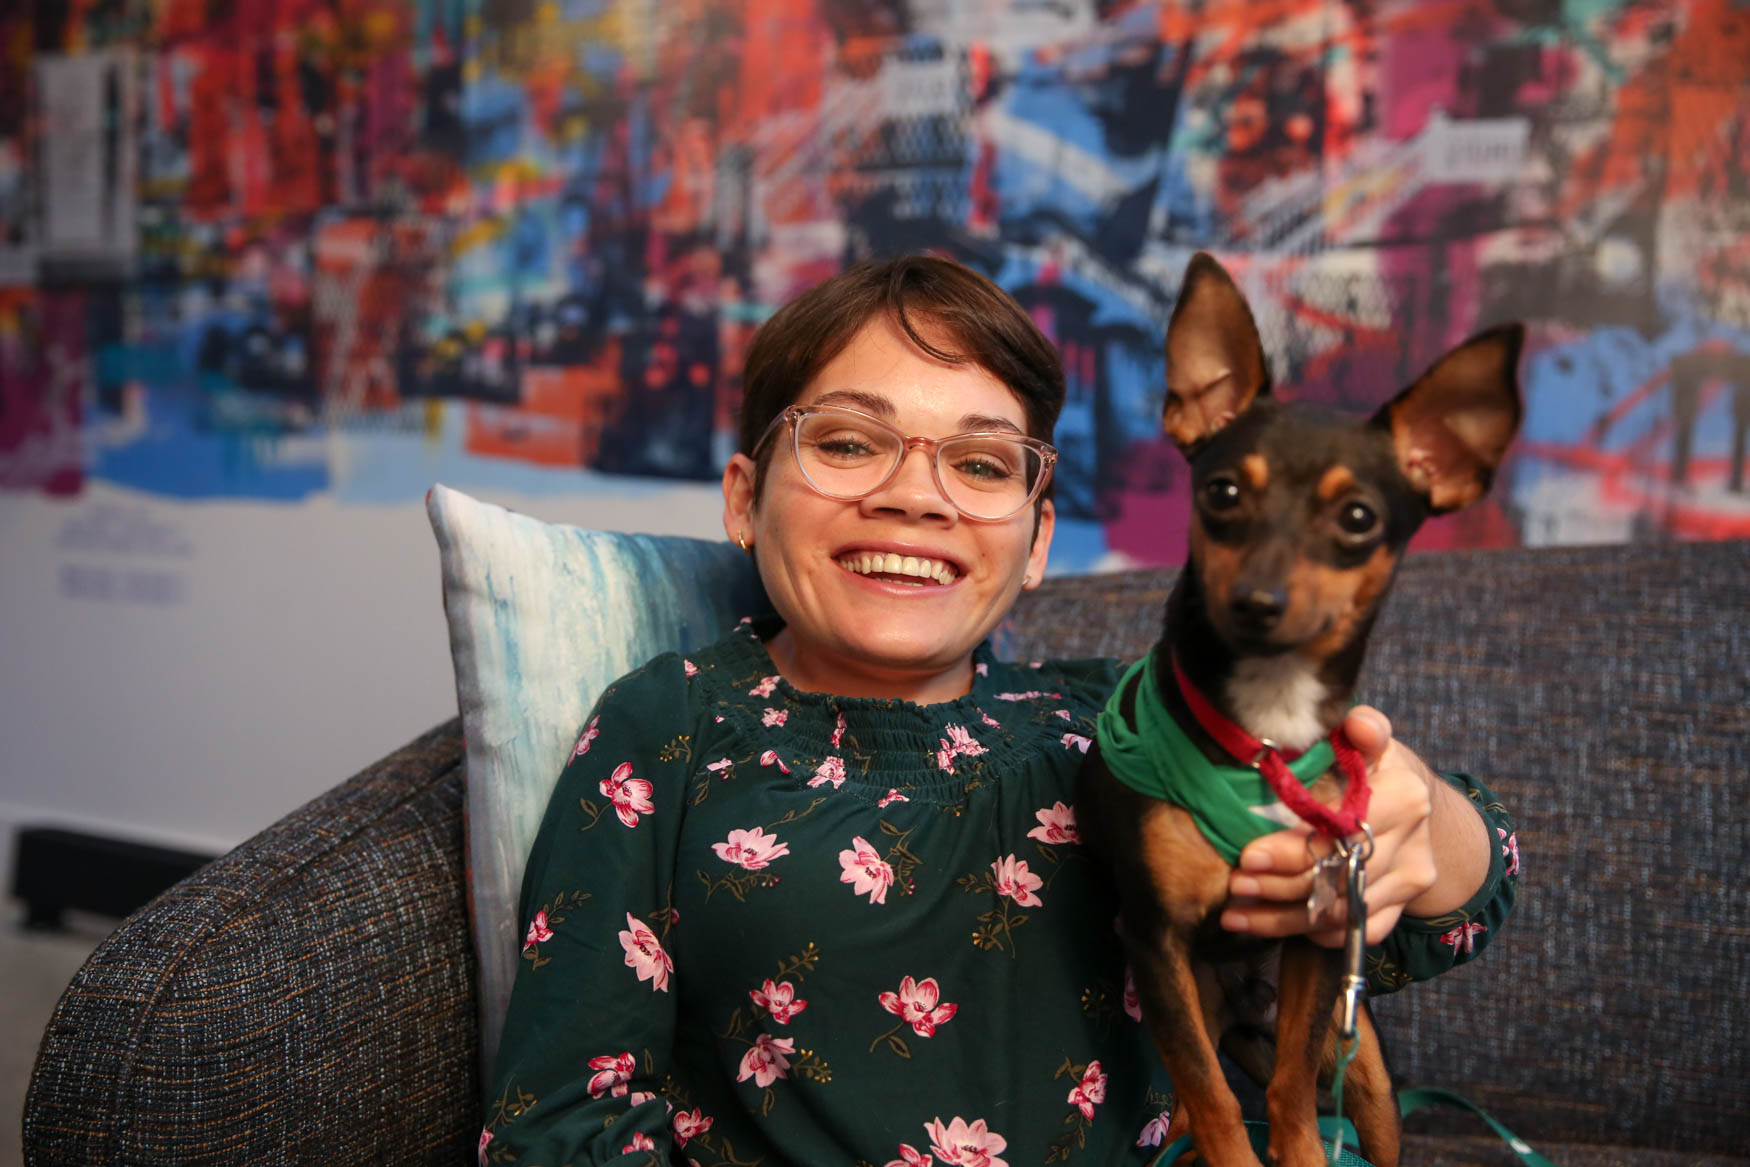 Angie is originally from Lancaster, PA and is currently working as a budget analyst. She loves museums, reading, going to outdoor restaurants/bars and walking her dog. Learn more about Angie on our Facebook page. Photo location: Moxy Washington, D.C. Downtown (Image: Amanda Andrade-Rhoades/ DC Refined)